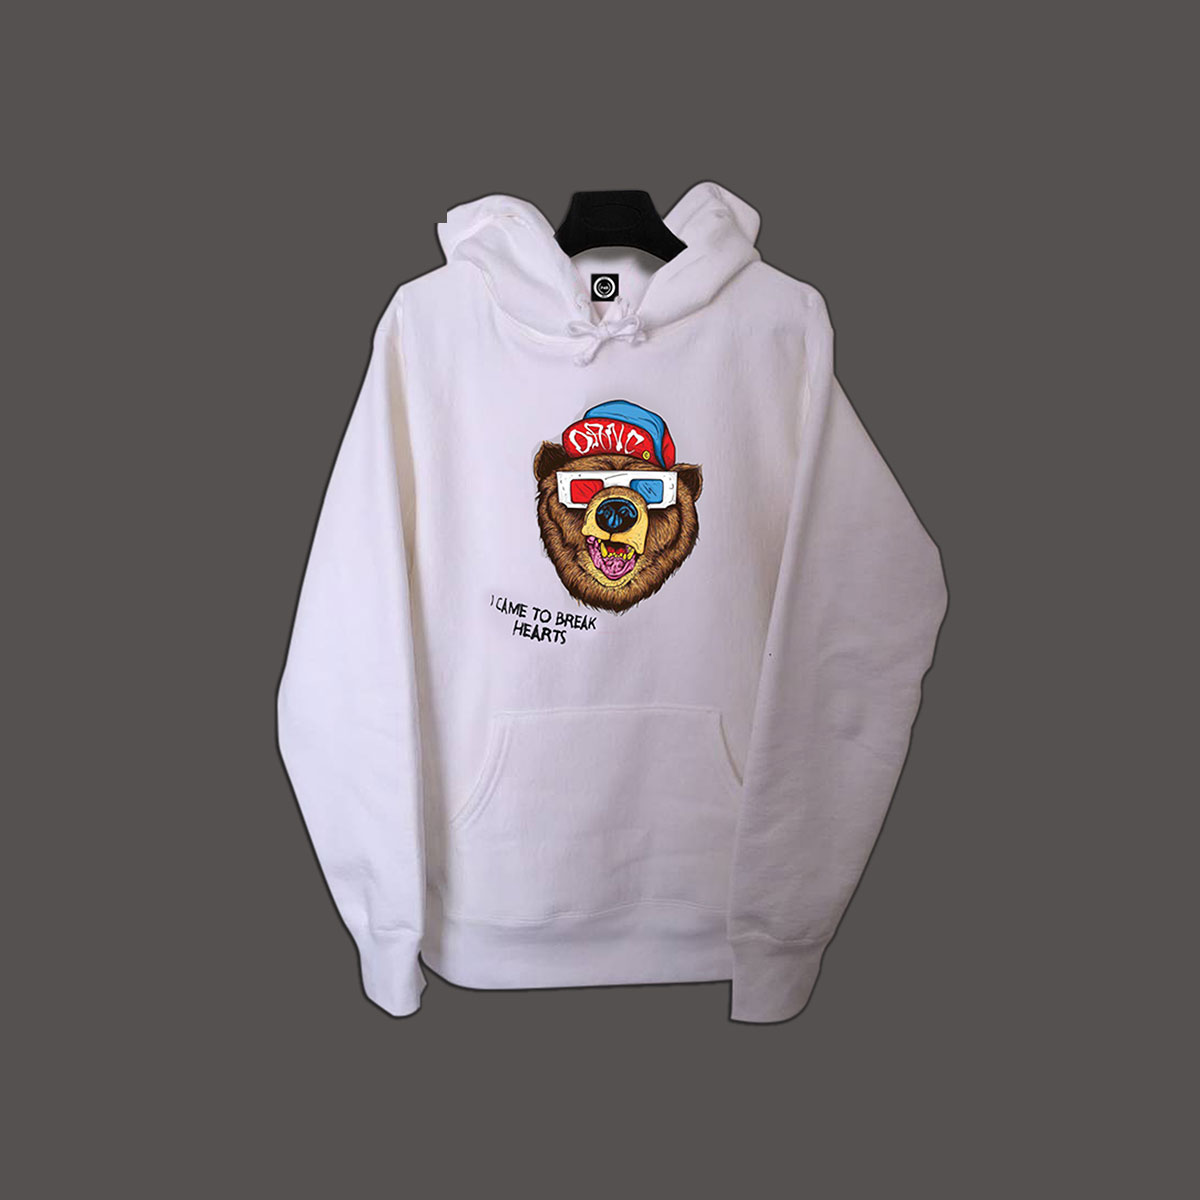 I Came Tp Break Hearts Pullover Hoodie - White